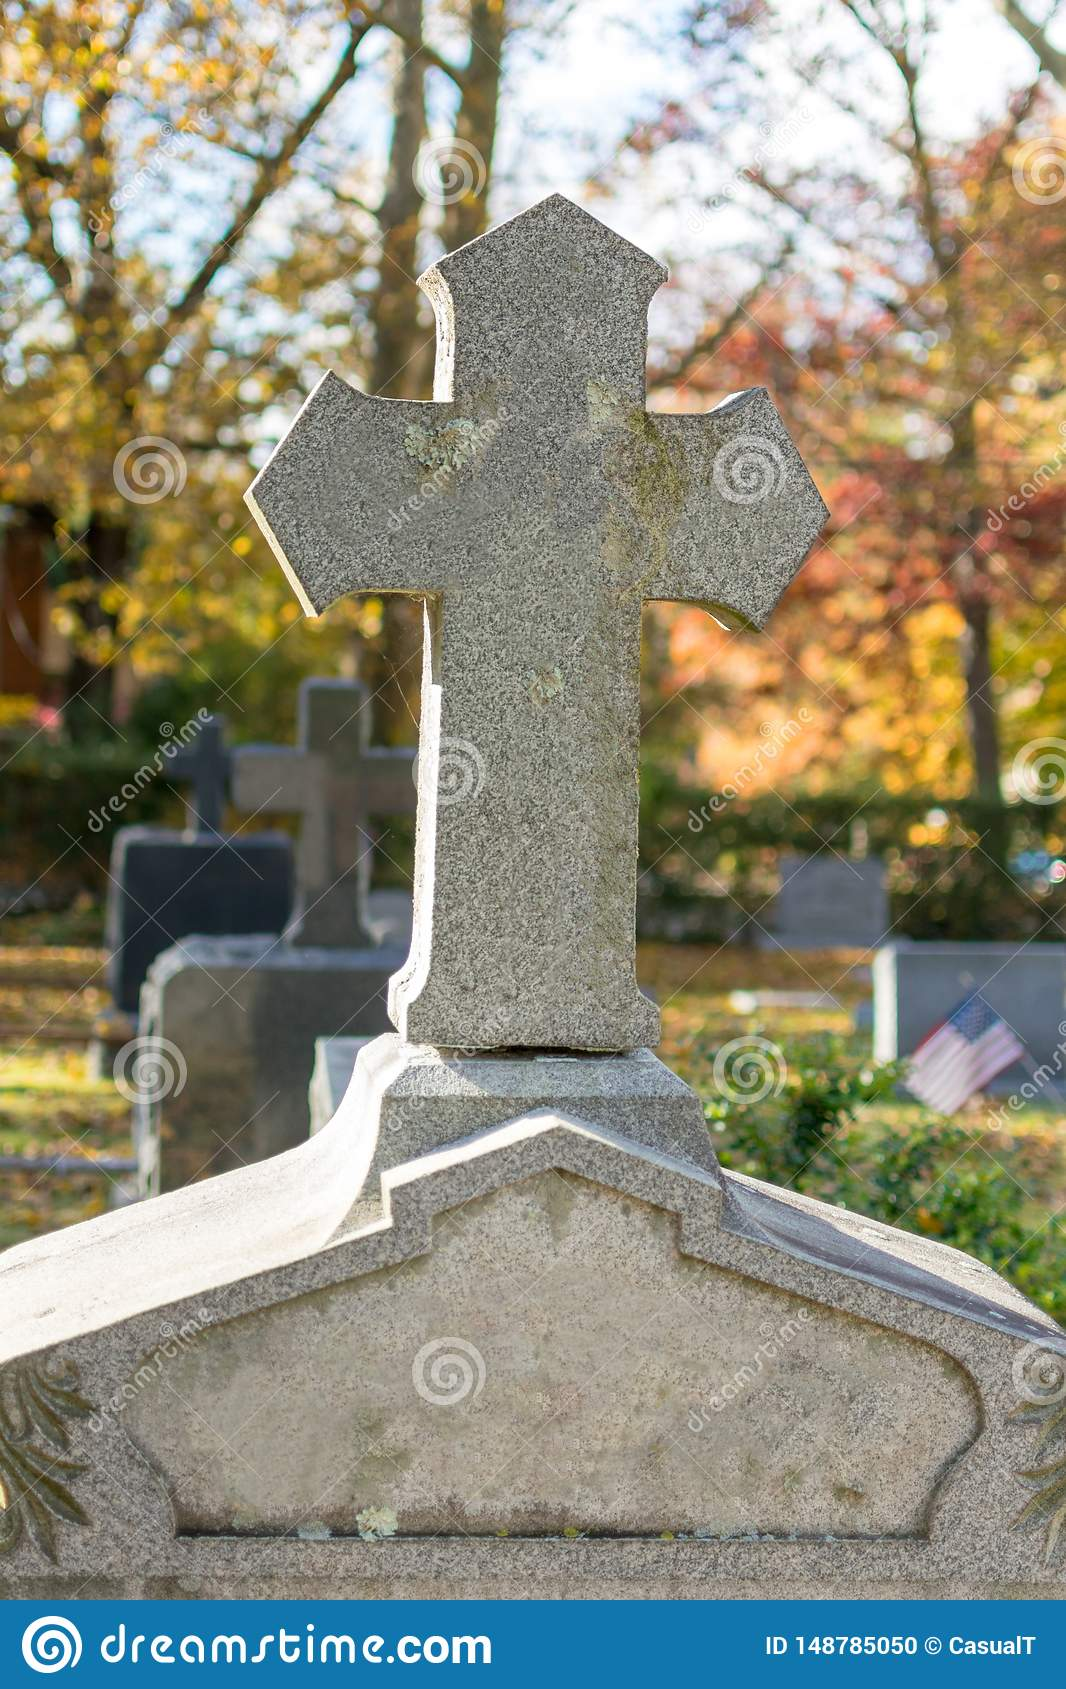 A stone cross atop an unmarked granite headstone at Sleepy Hollow Cemetery, on a calm and quiet autumn afternoon